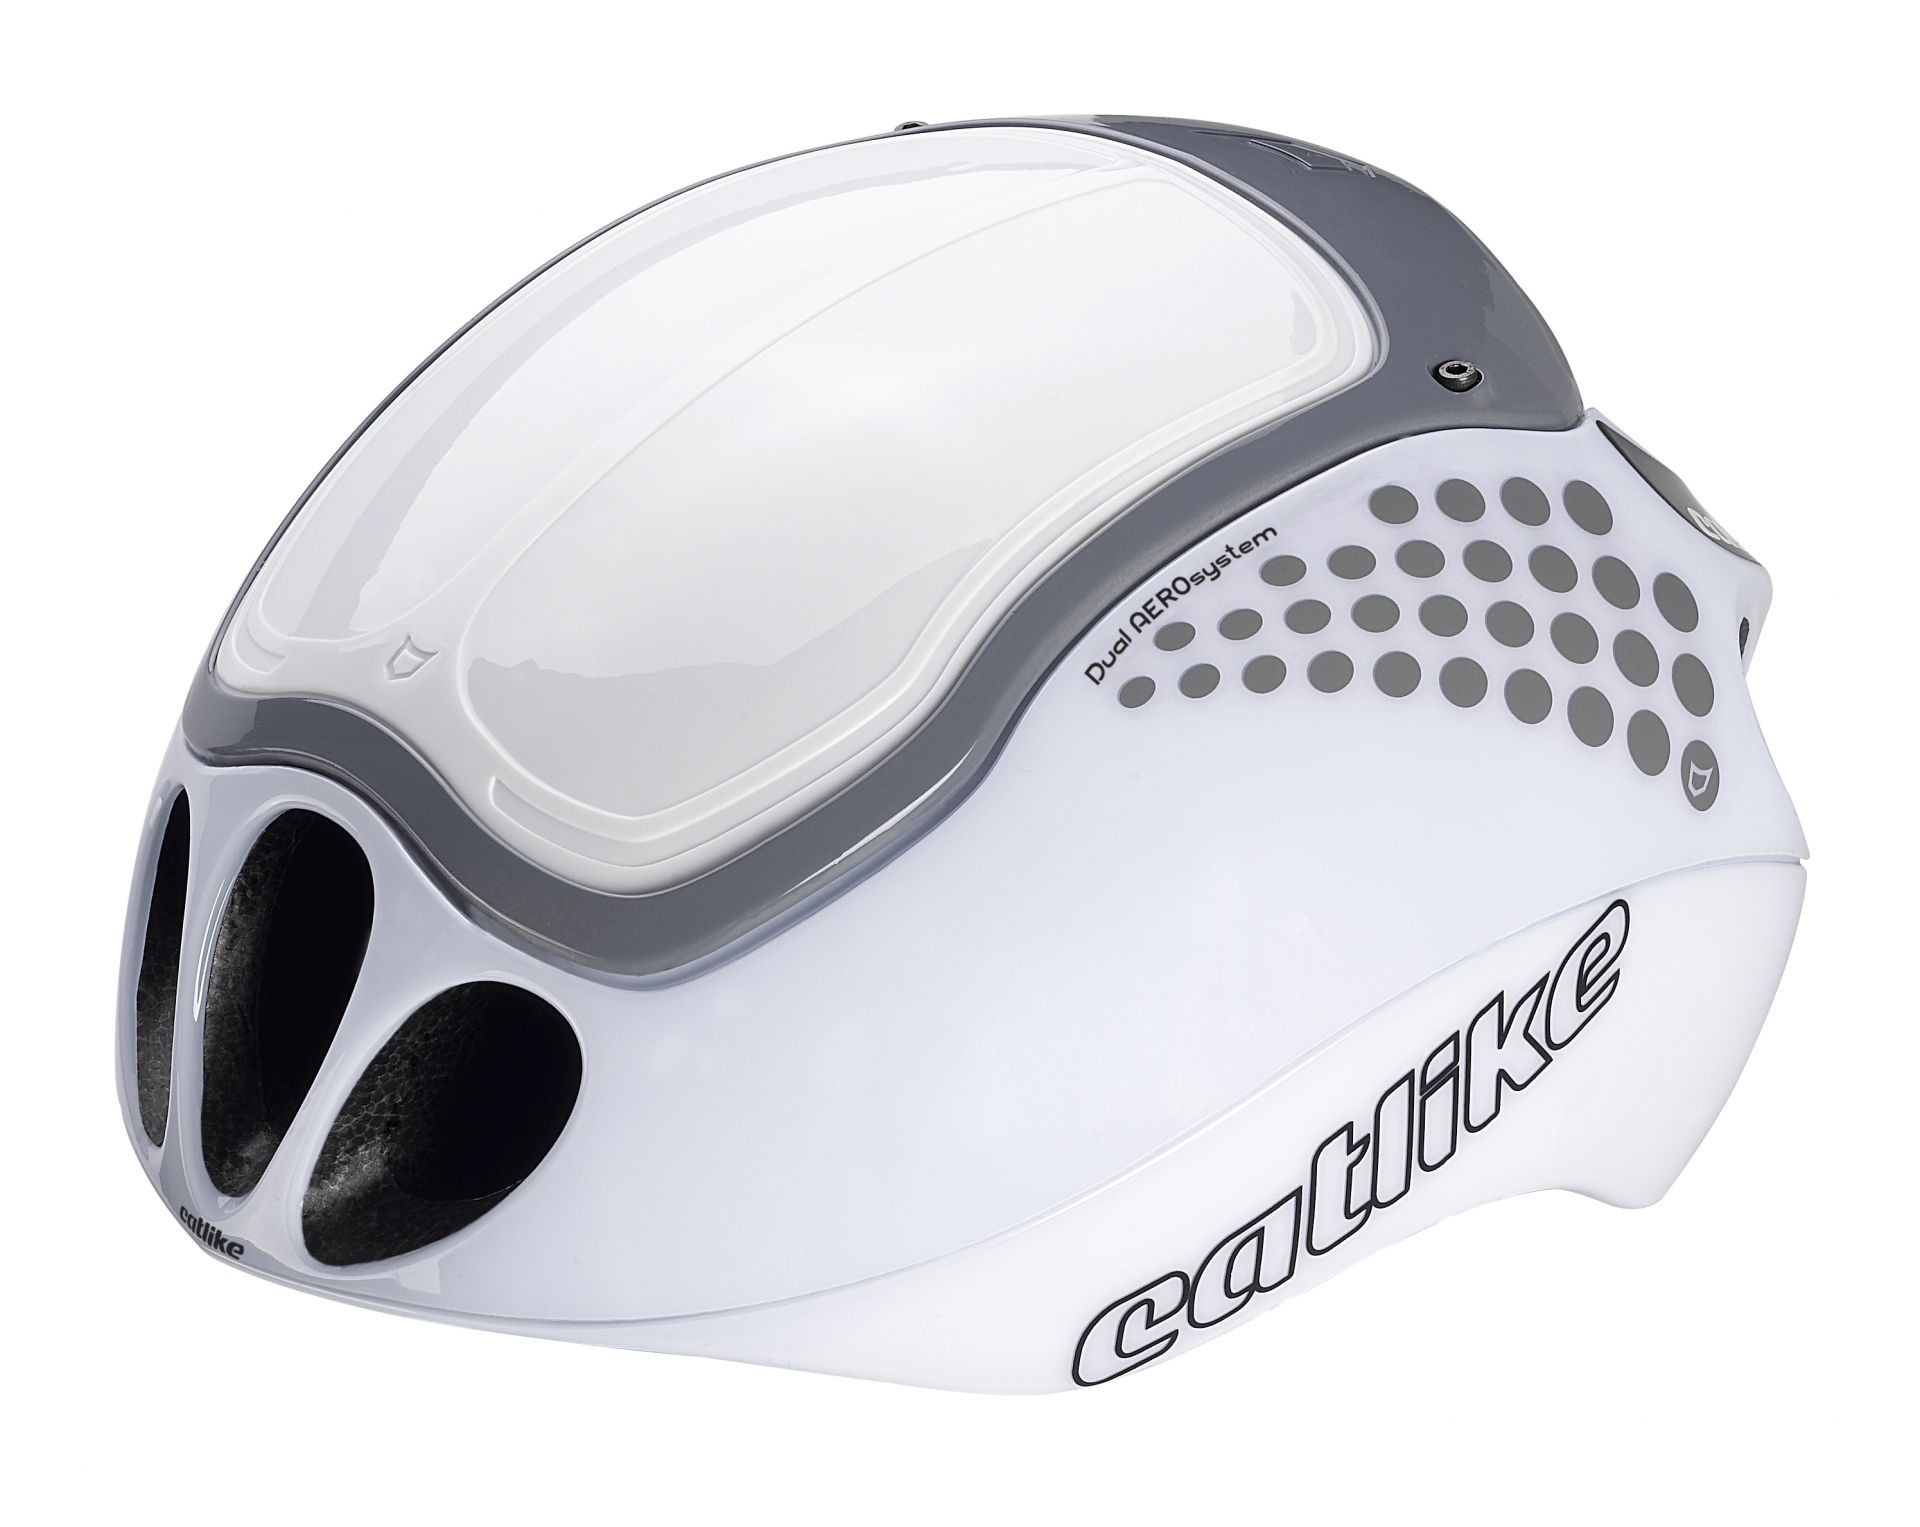 Casque Catlike Cloud 352 Blanc - S 54-56